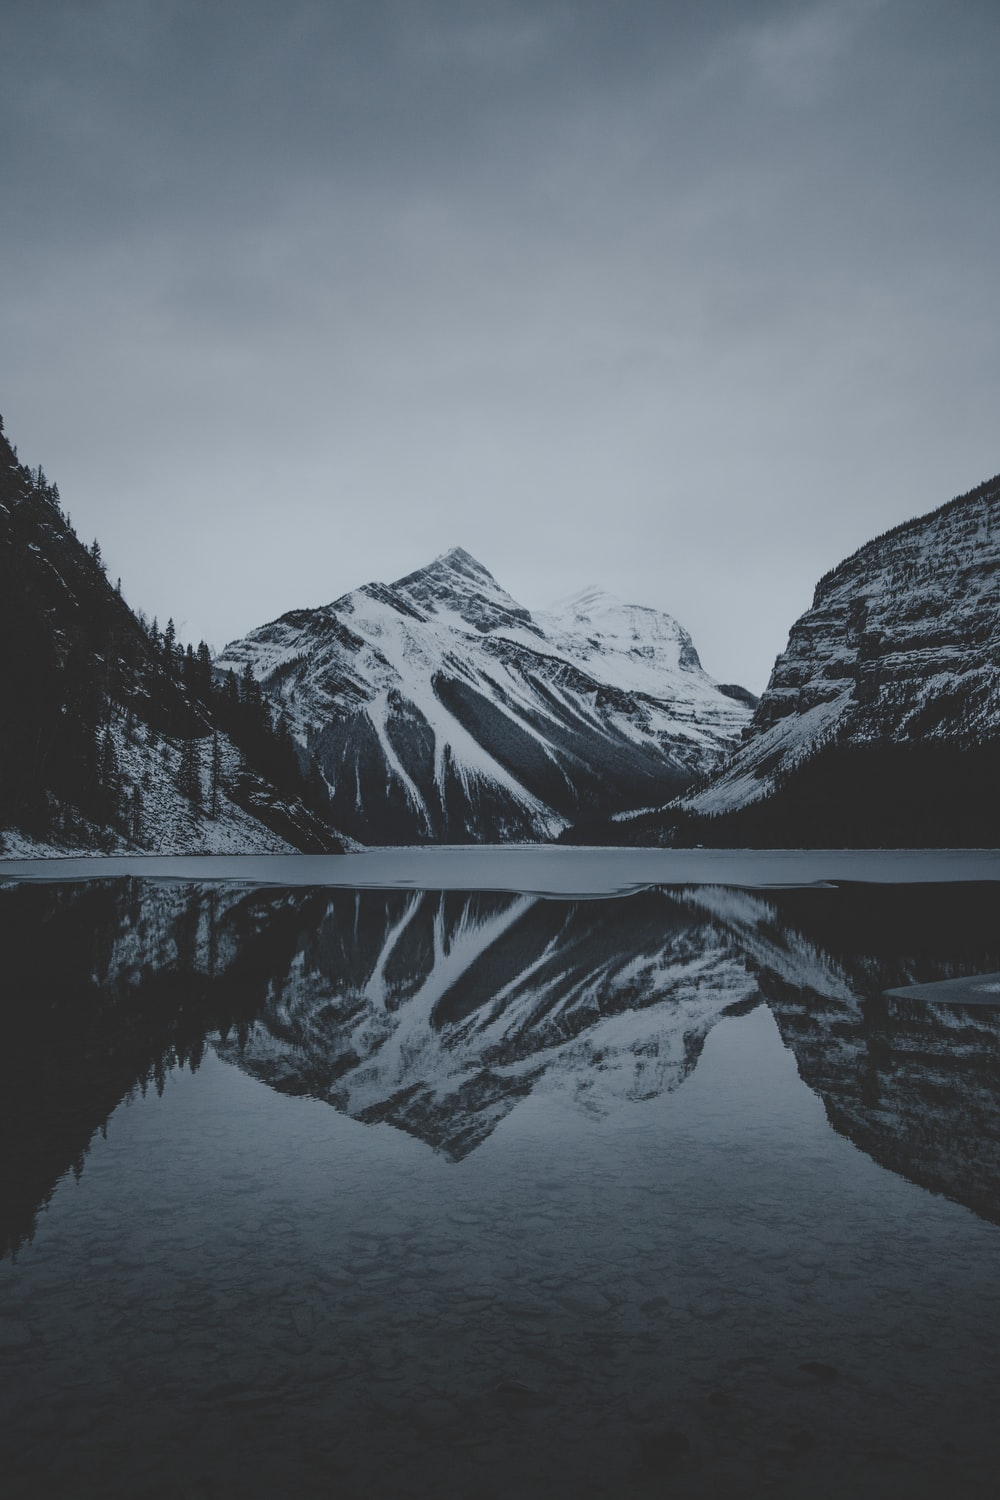 snow mountains and lake undr gray sky